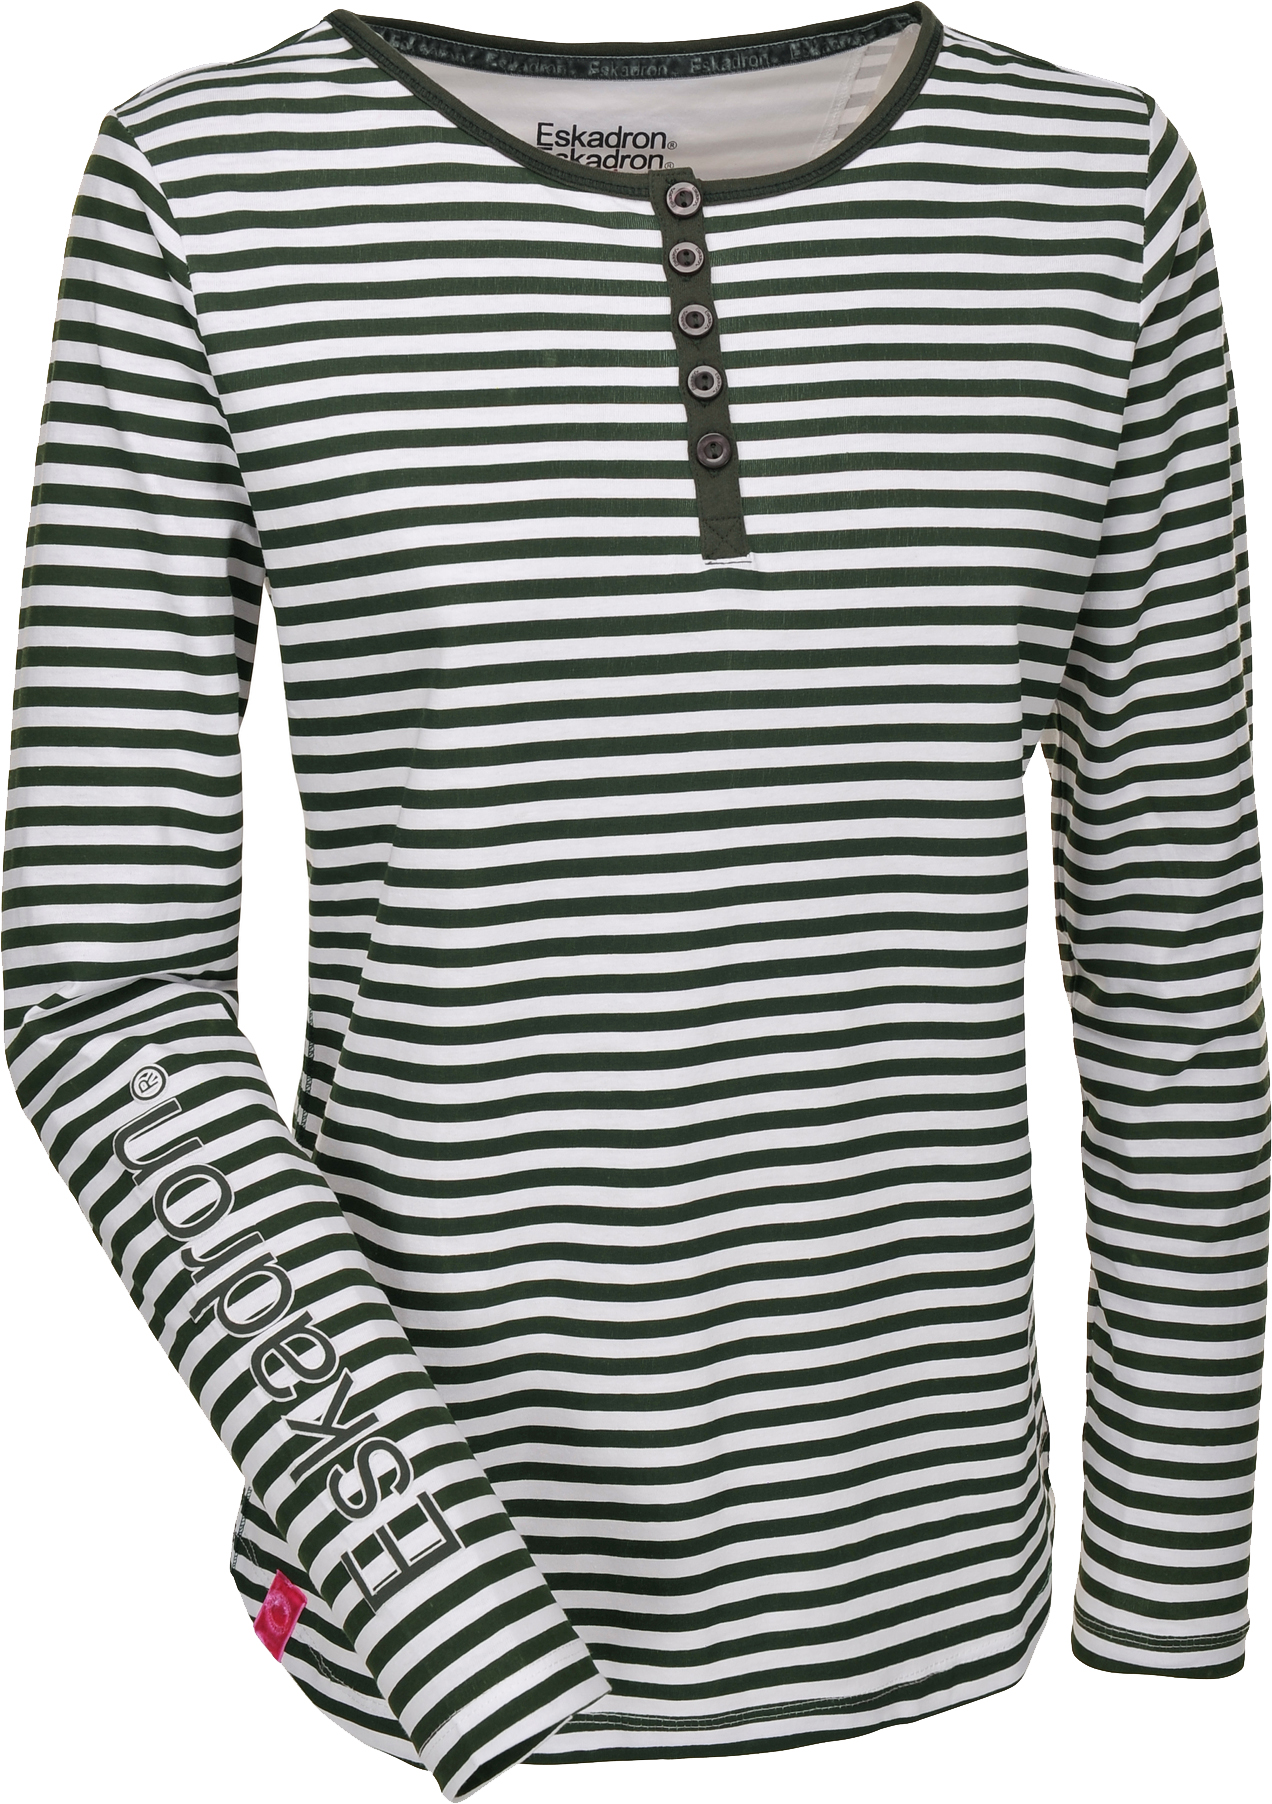 Eskadron Fanatics Shirt Women DANA longsleeve in olive-white-striped